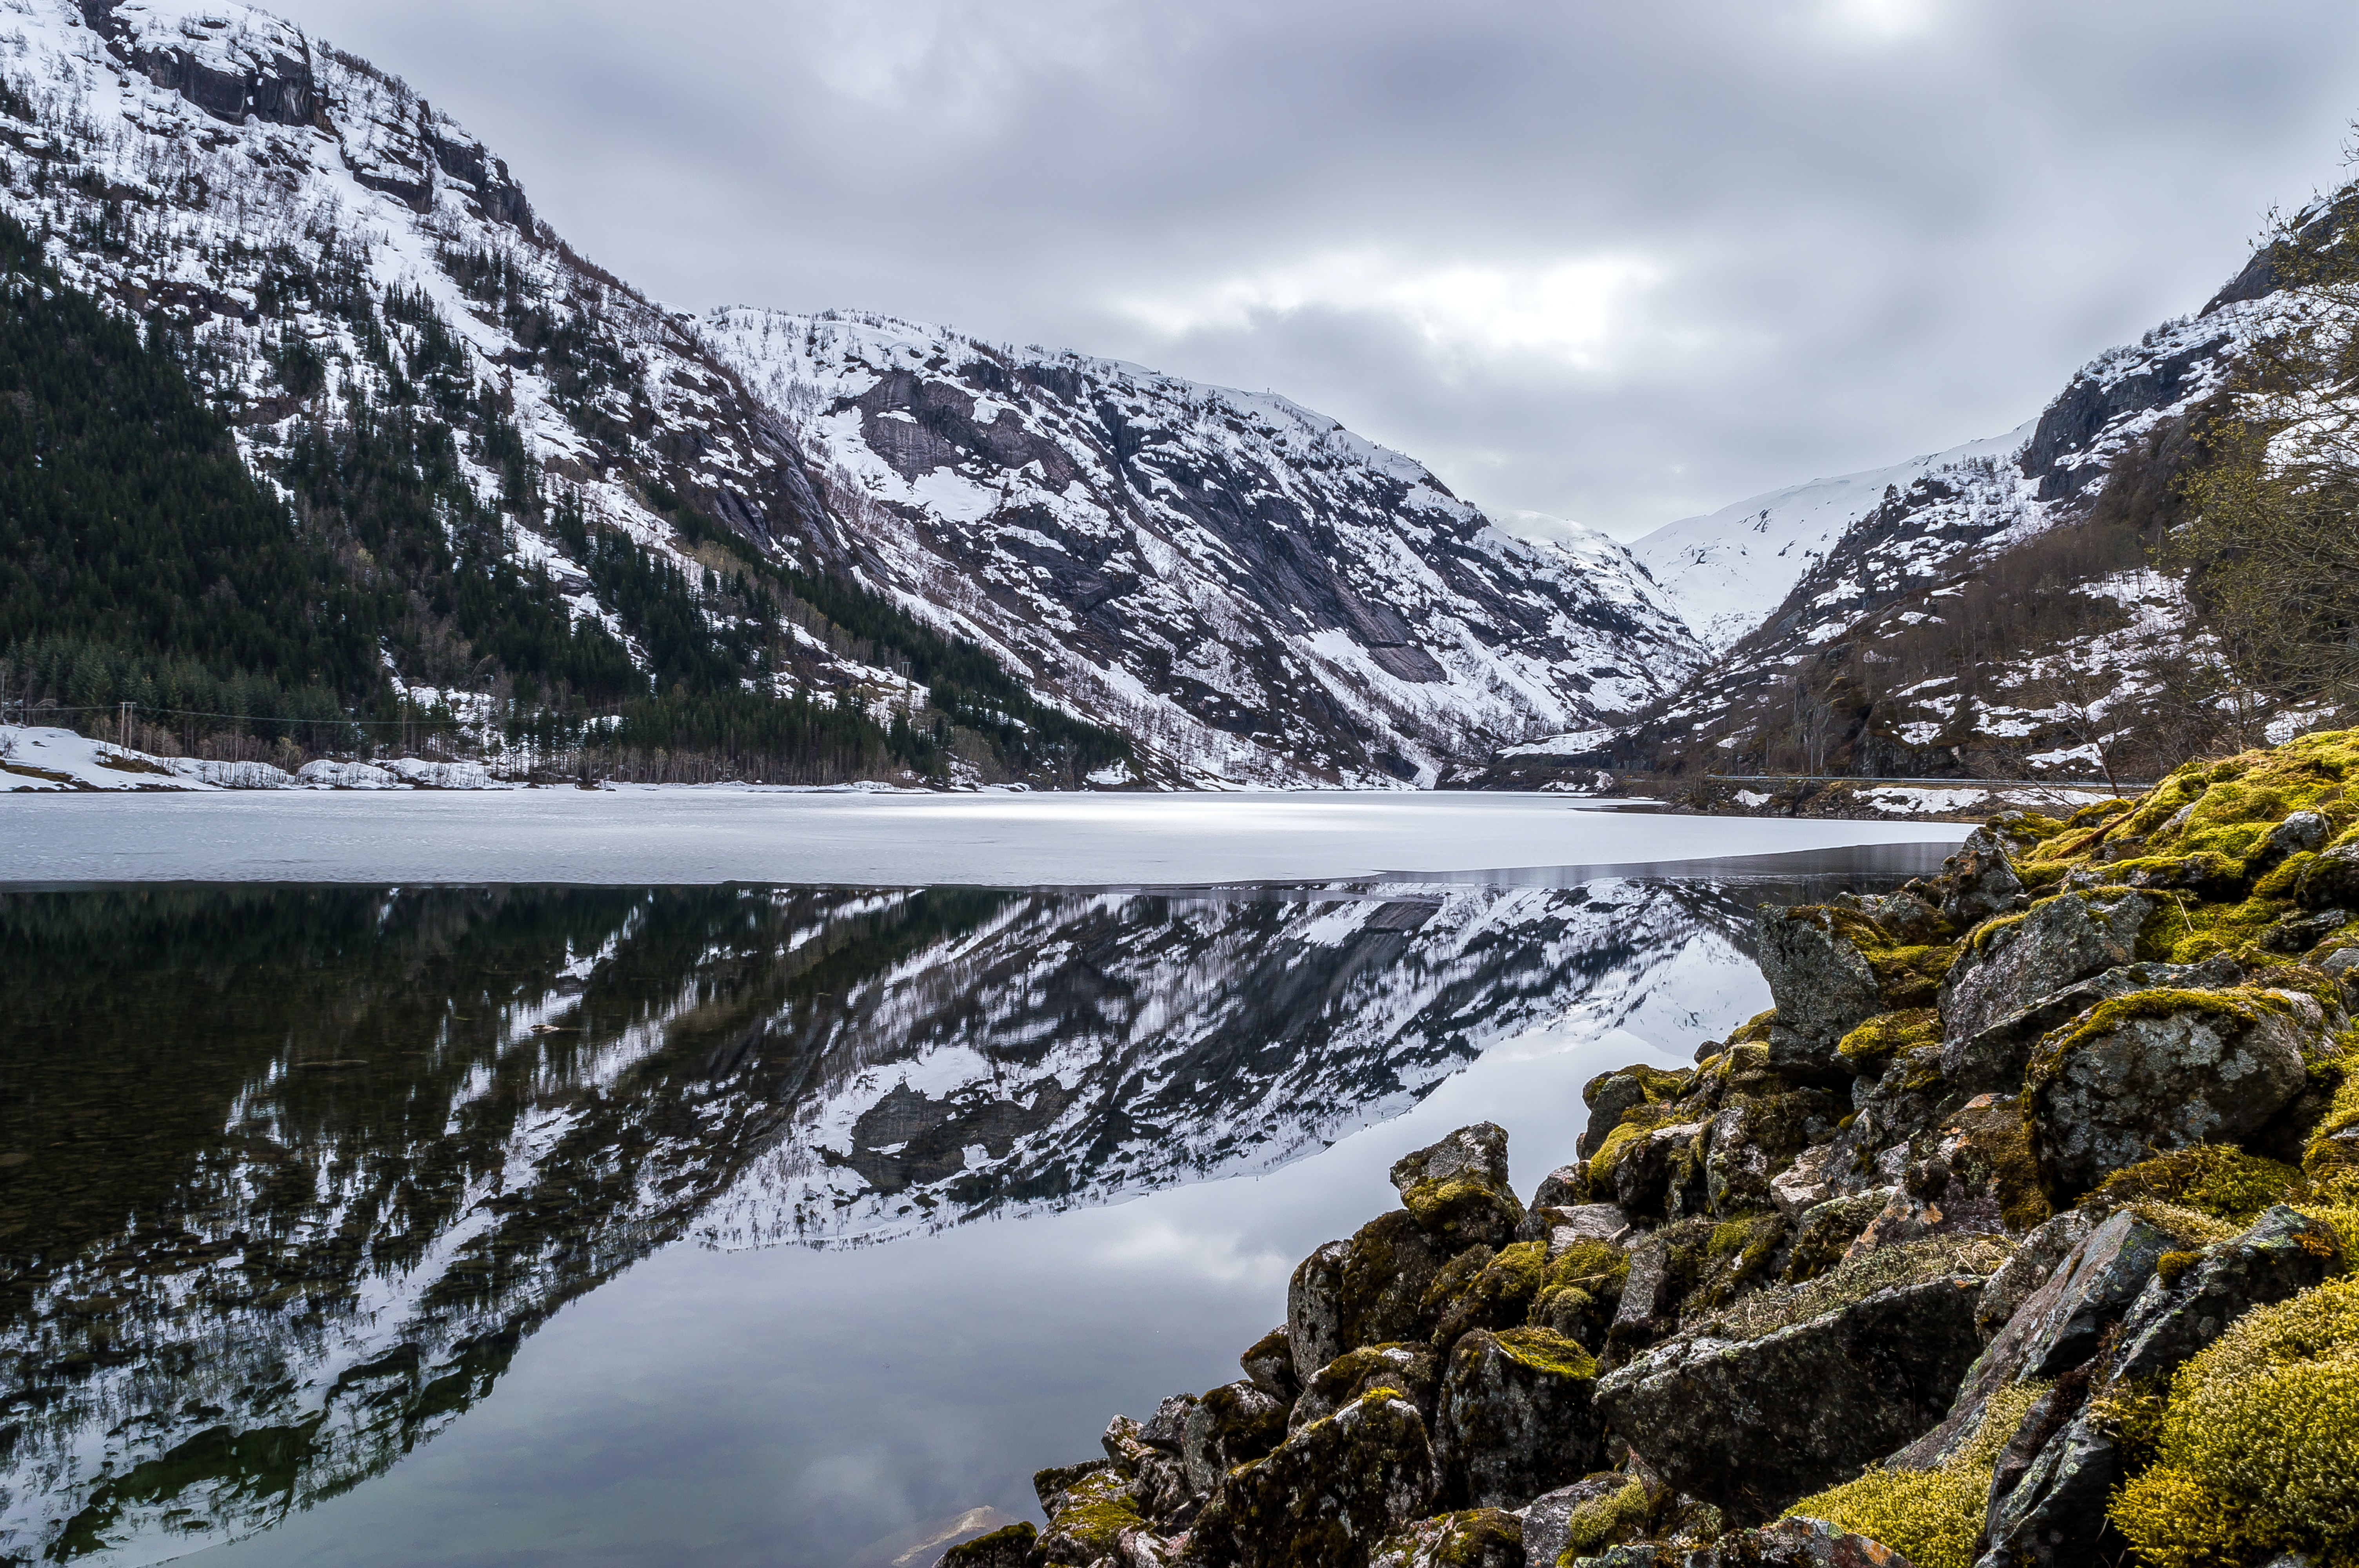 Snowy mountains on a cloudy day reflected  in a glassy, melting lake